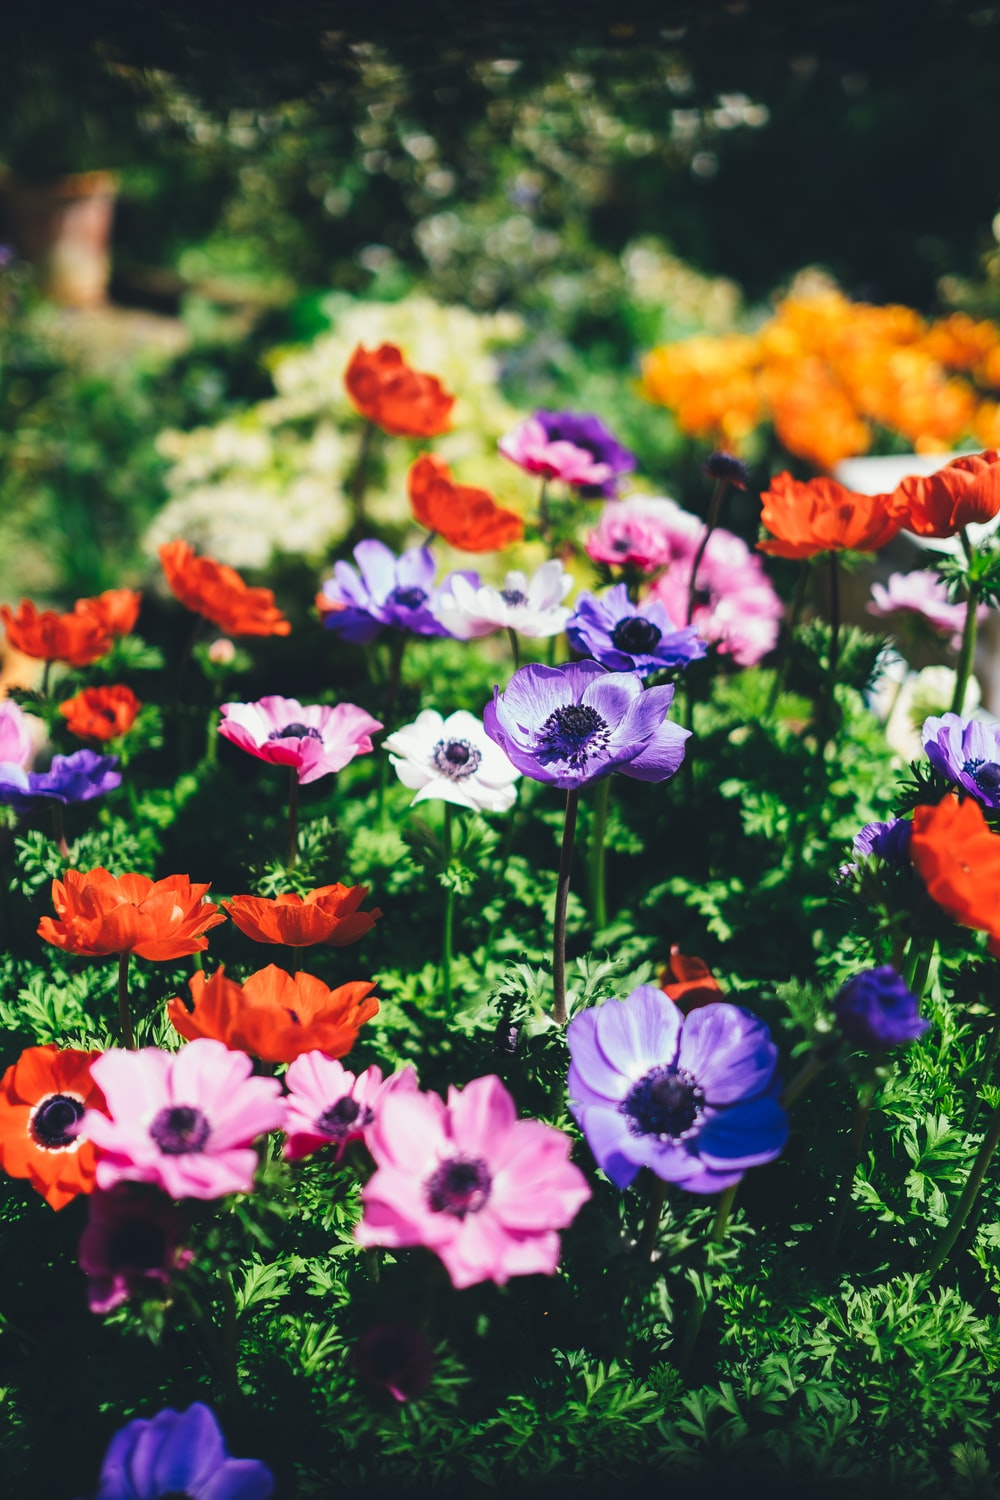 assorted flowers in shallow focus lens